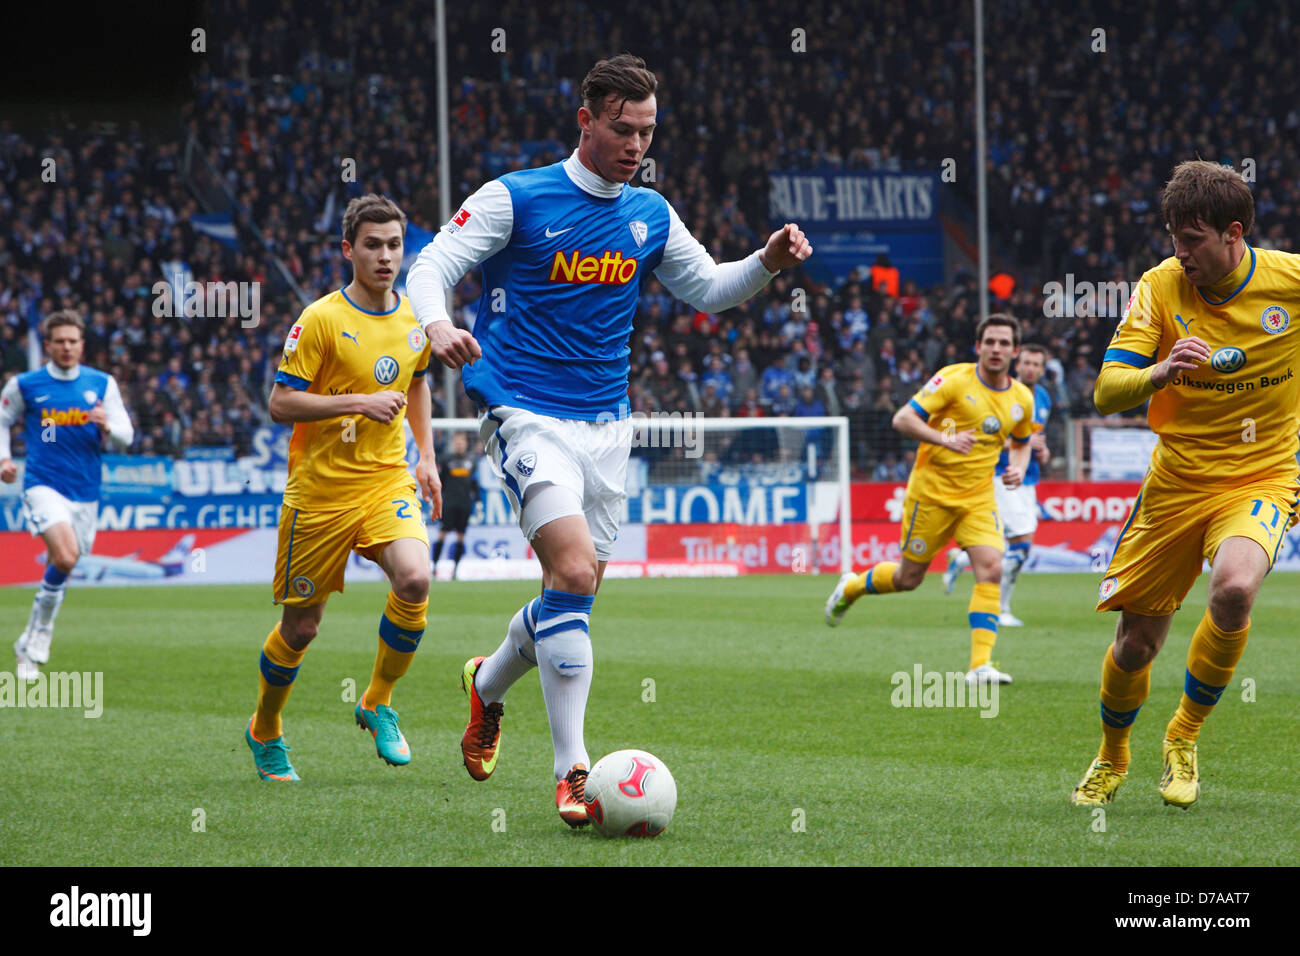 Sports football 2 bundesliga german second league for Sport bundesliga